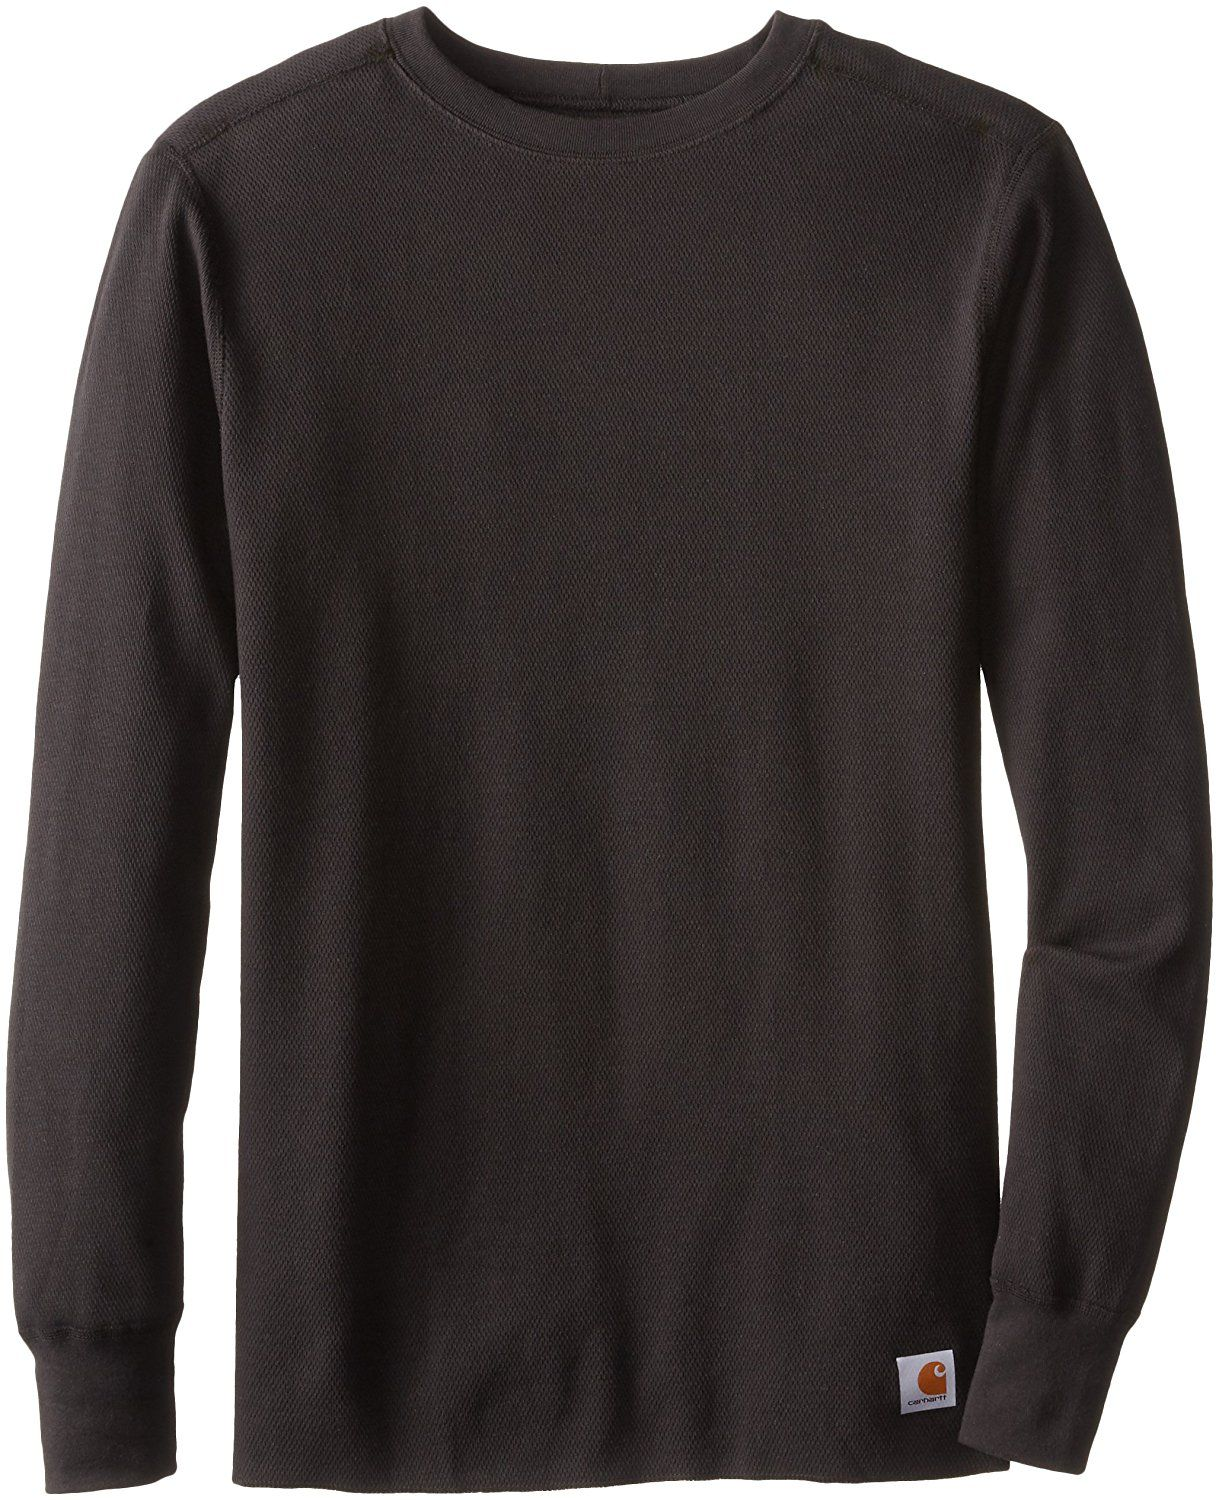 Carhartt Mens Base Force Midweight Classic Thermal Base Layer Long Sleeve Shirt Base Layer Top